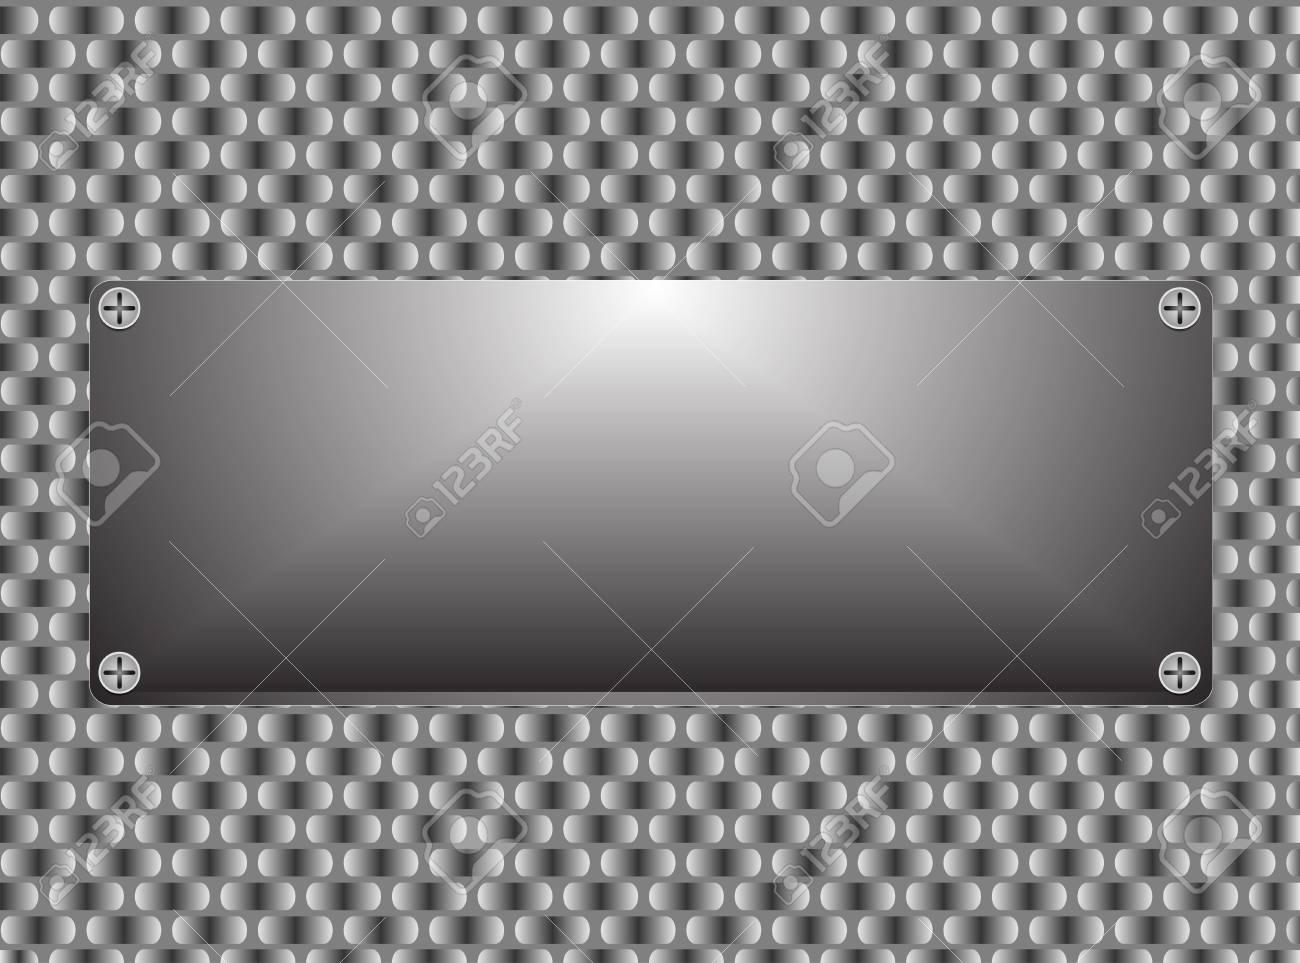 Metal texture plate with screws illustration Stock Vector - 23980178